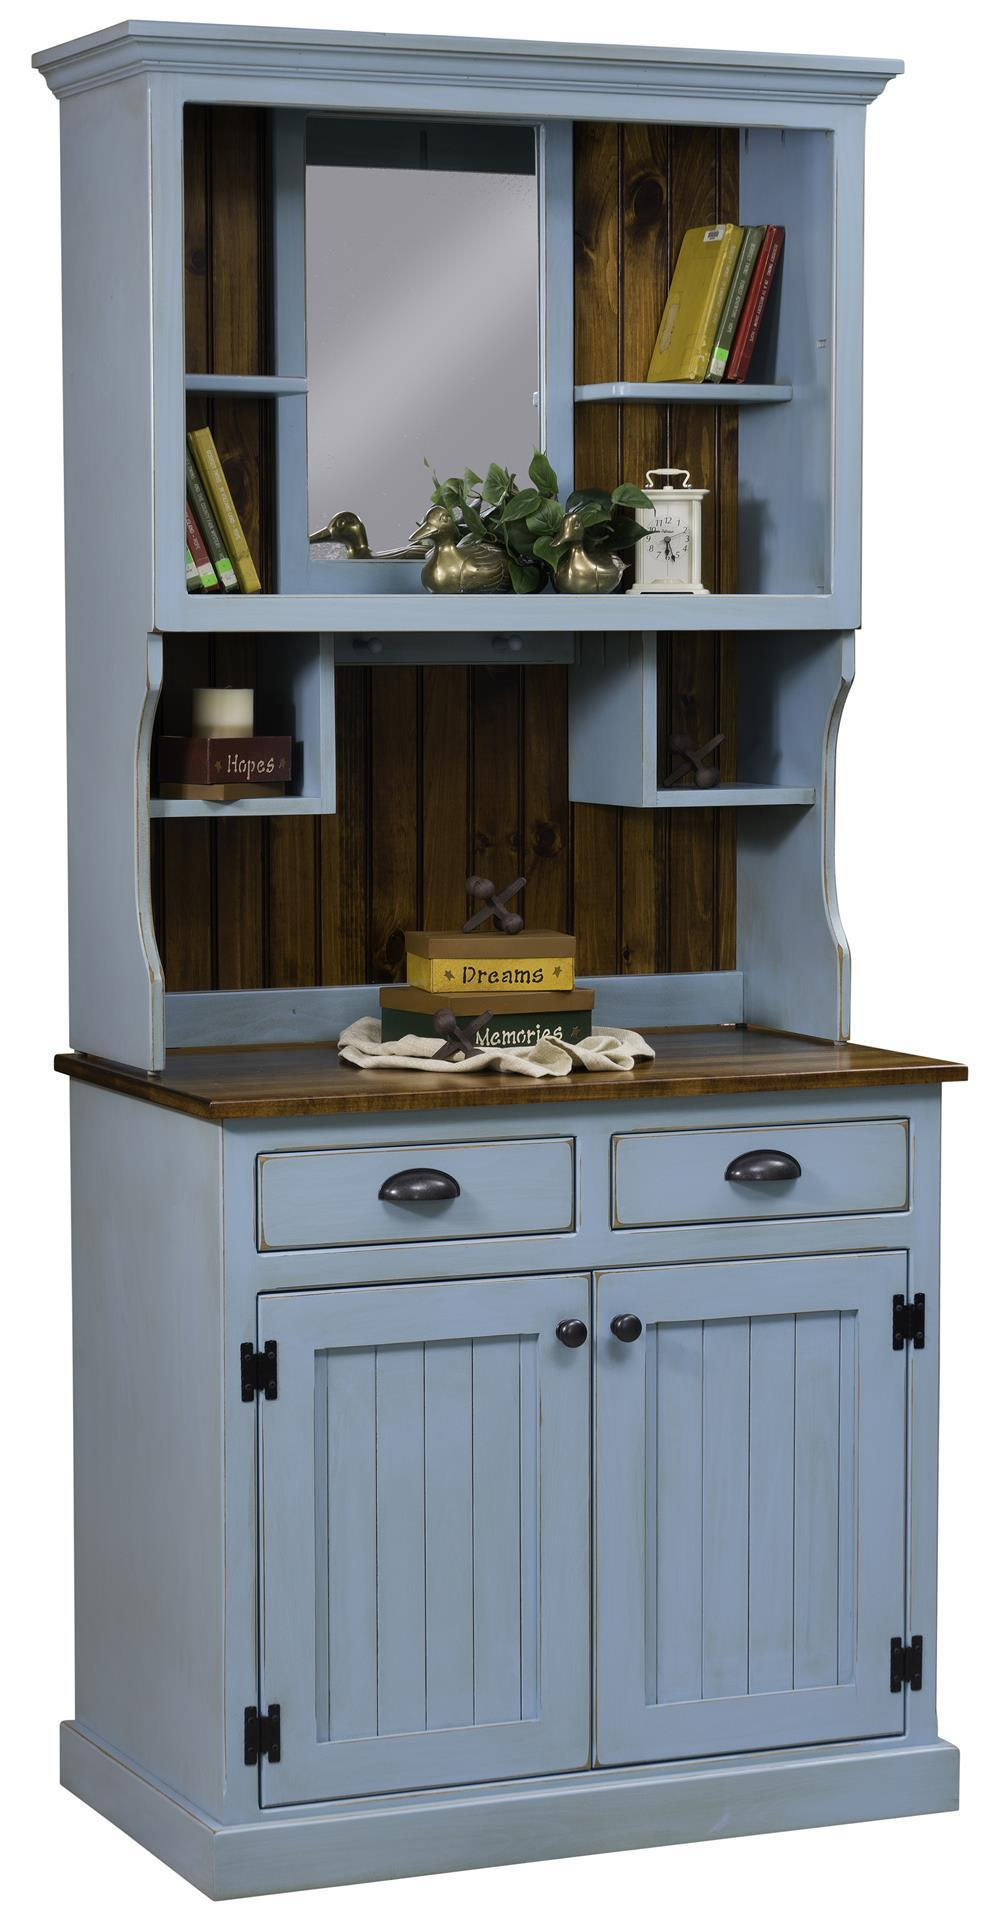 Amish Burbank Country Style Hutch By Dutchcrafters